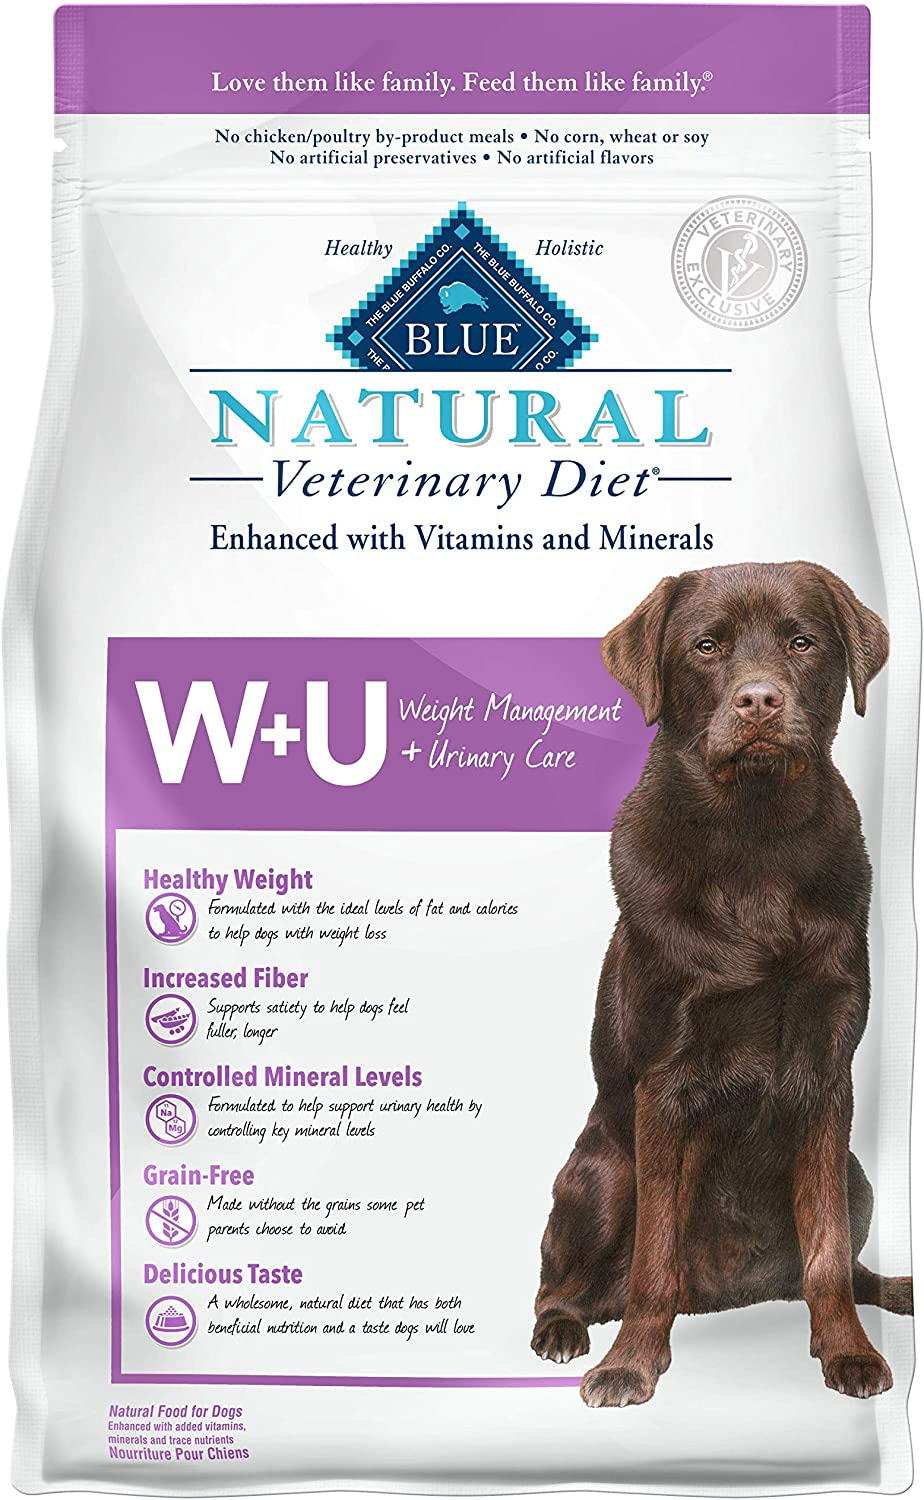 4. Blue Buffalo Natural Veterinary Diet Weight Management + Urinary Care for Dogs